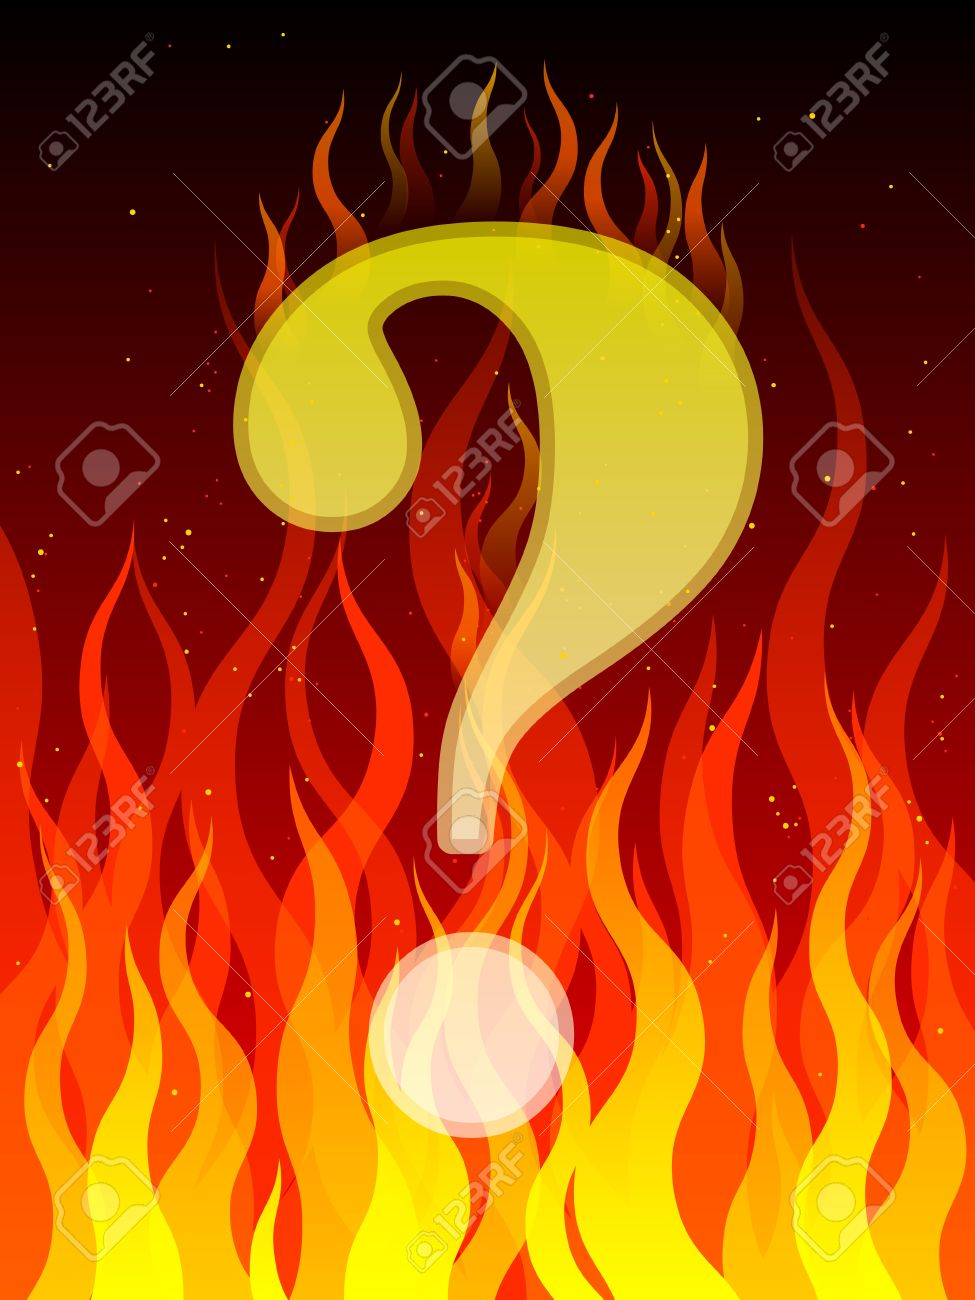 Burning question Stock Vector - 13629197